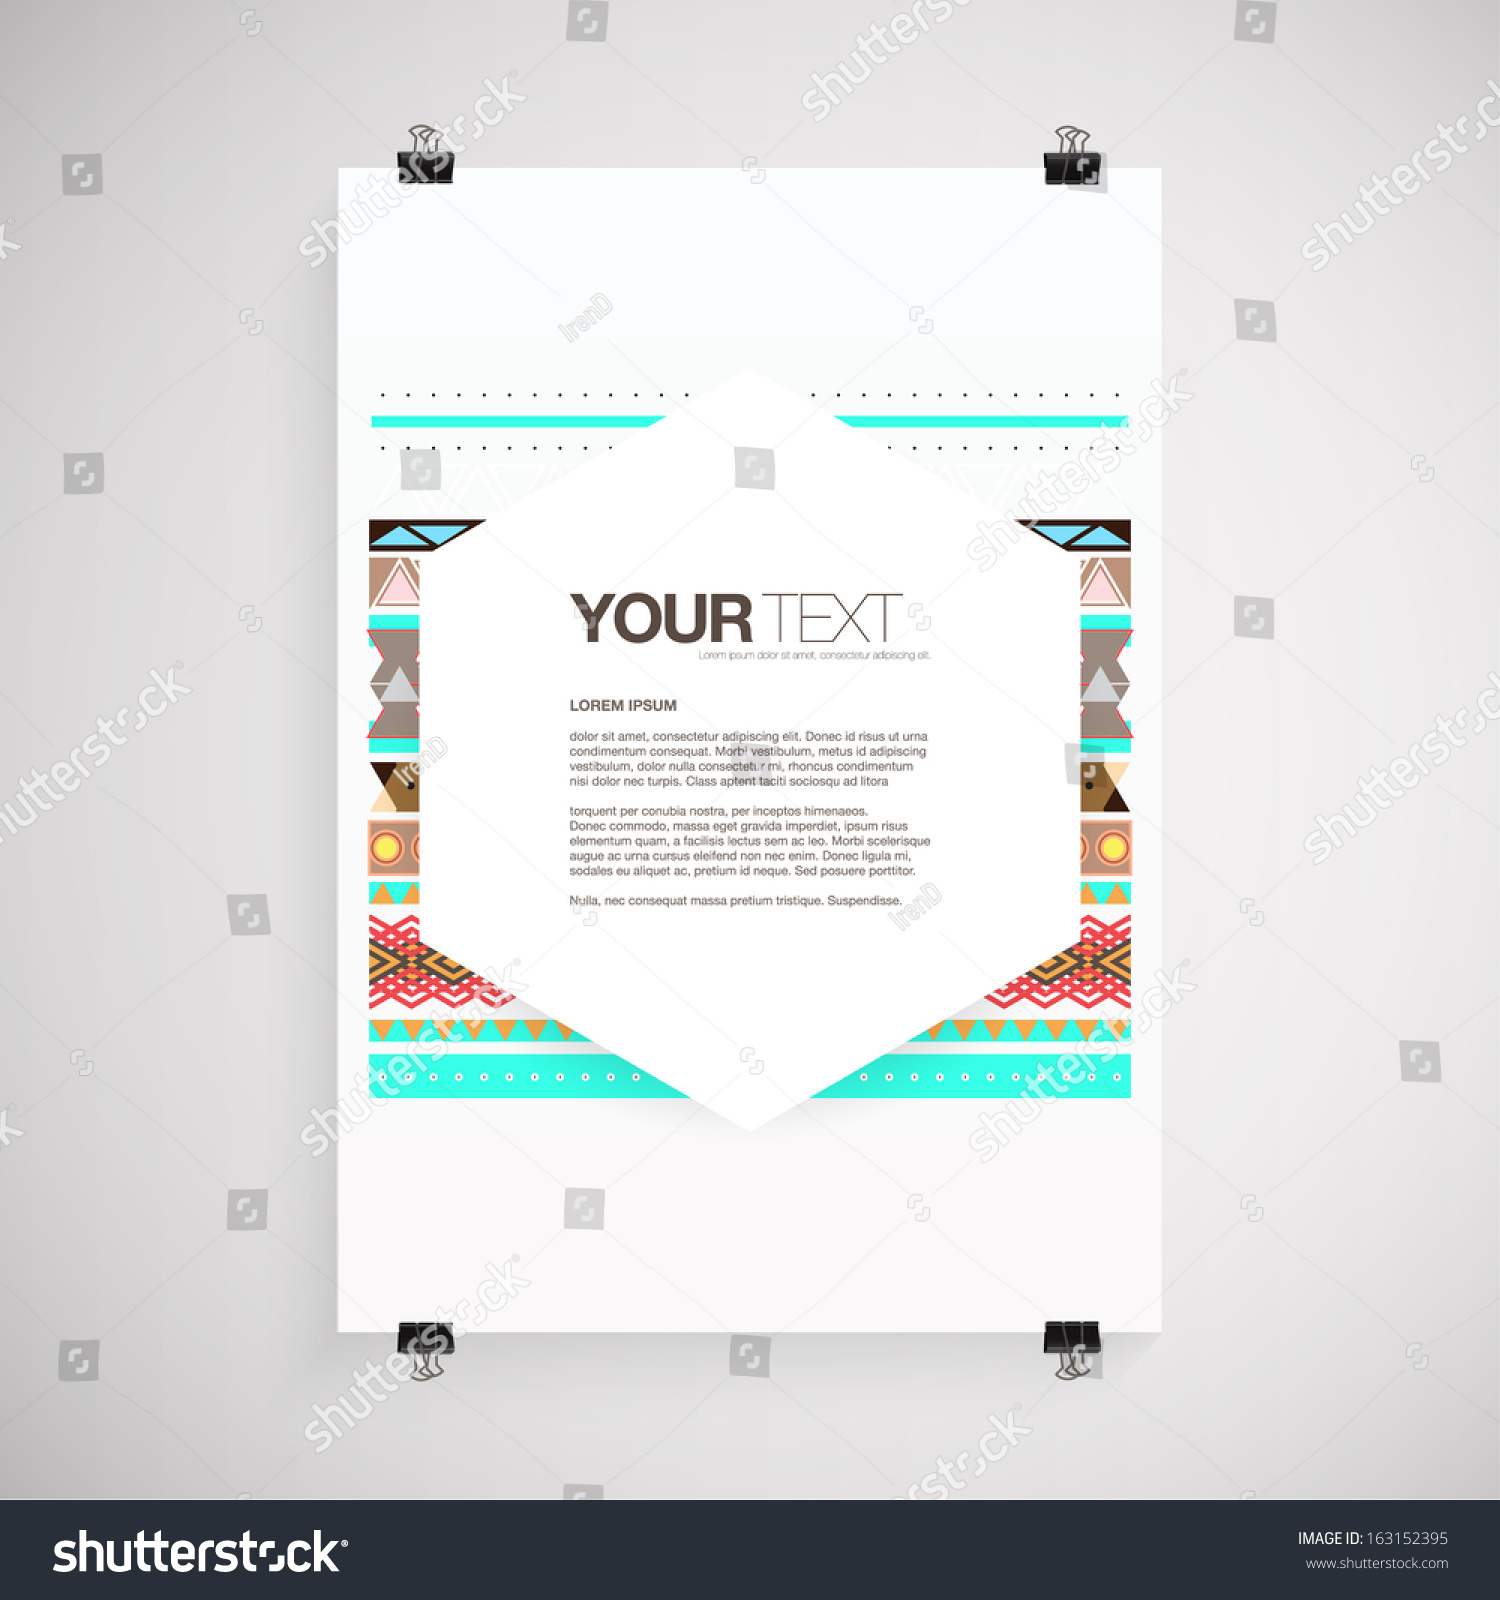 Poster design eps - Abstract A4 A3 Poster Design With Your Text And Aztec Style Pattern Background Eps 10